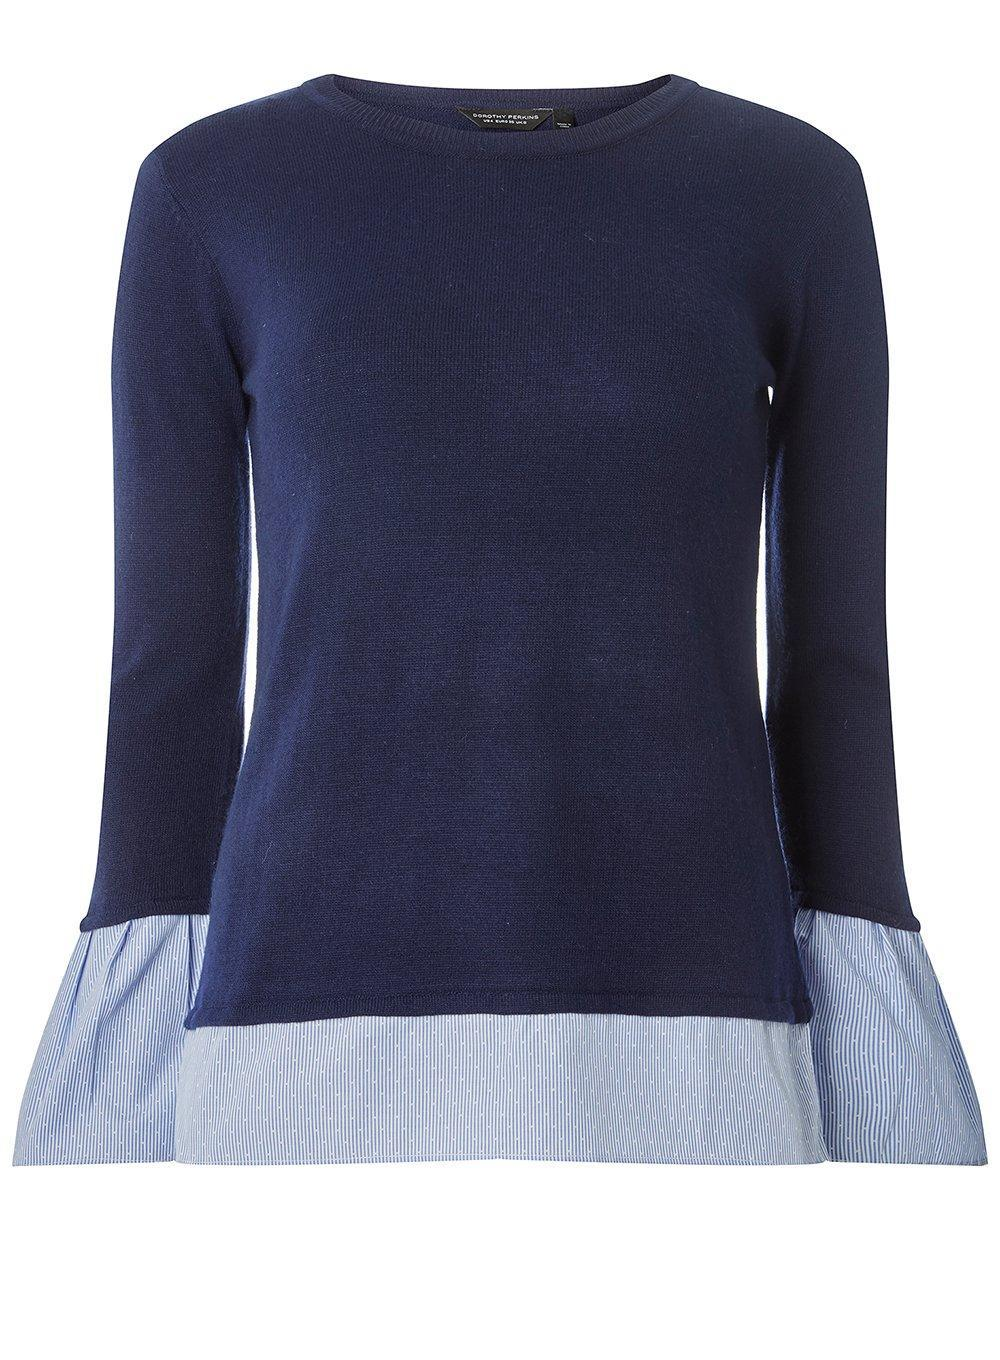 Sale Affordable Dorothy Perkins Womens Navy Woven Cuff 2-In-1 jumper- Sale Authentic Outlet Store dKYXtA